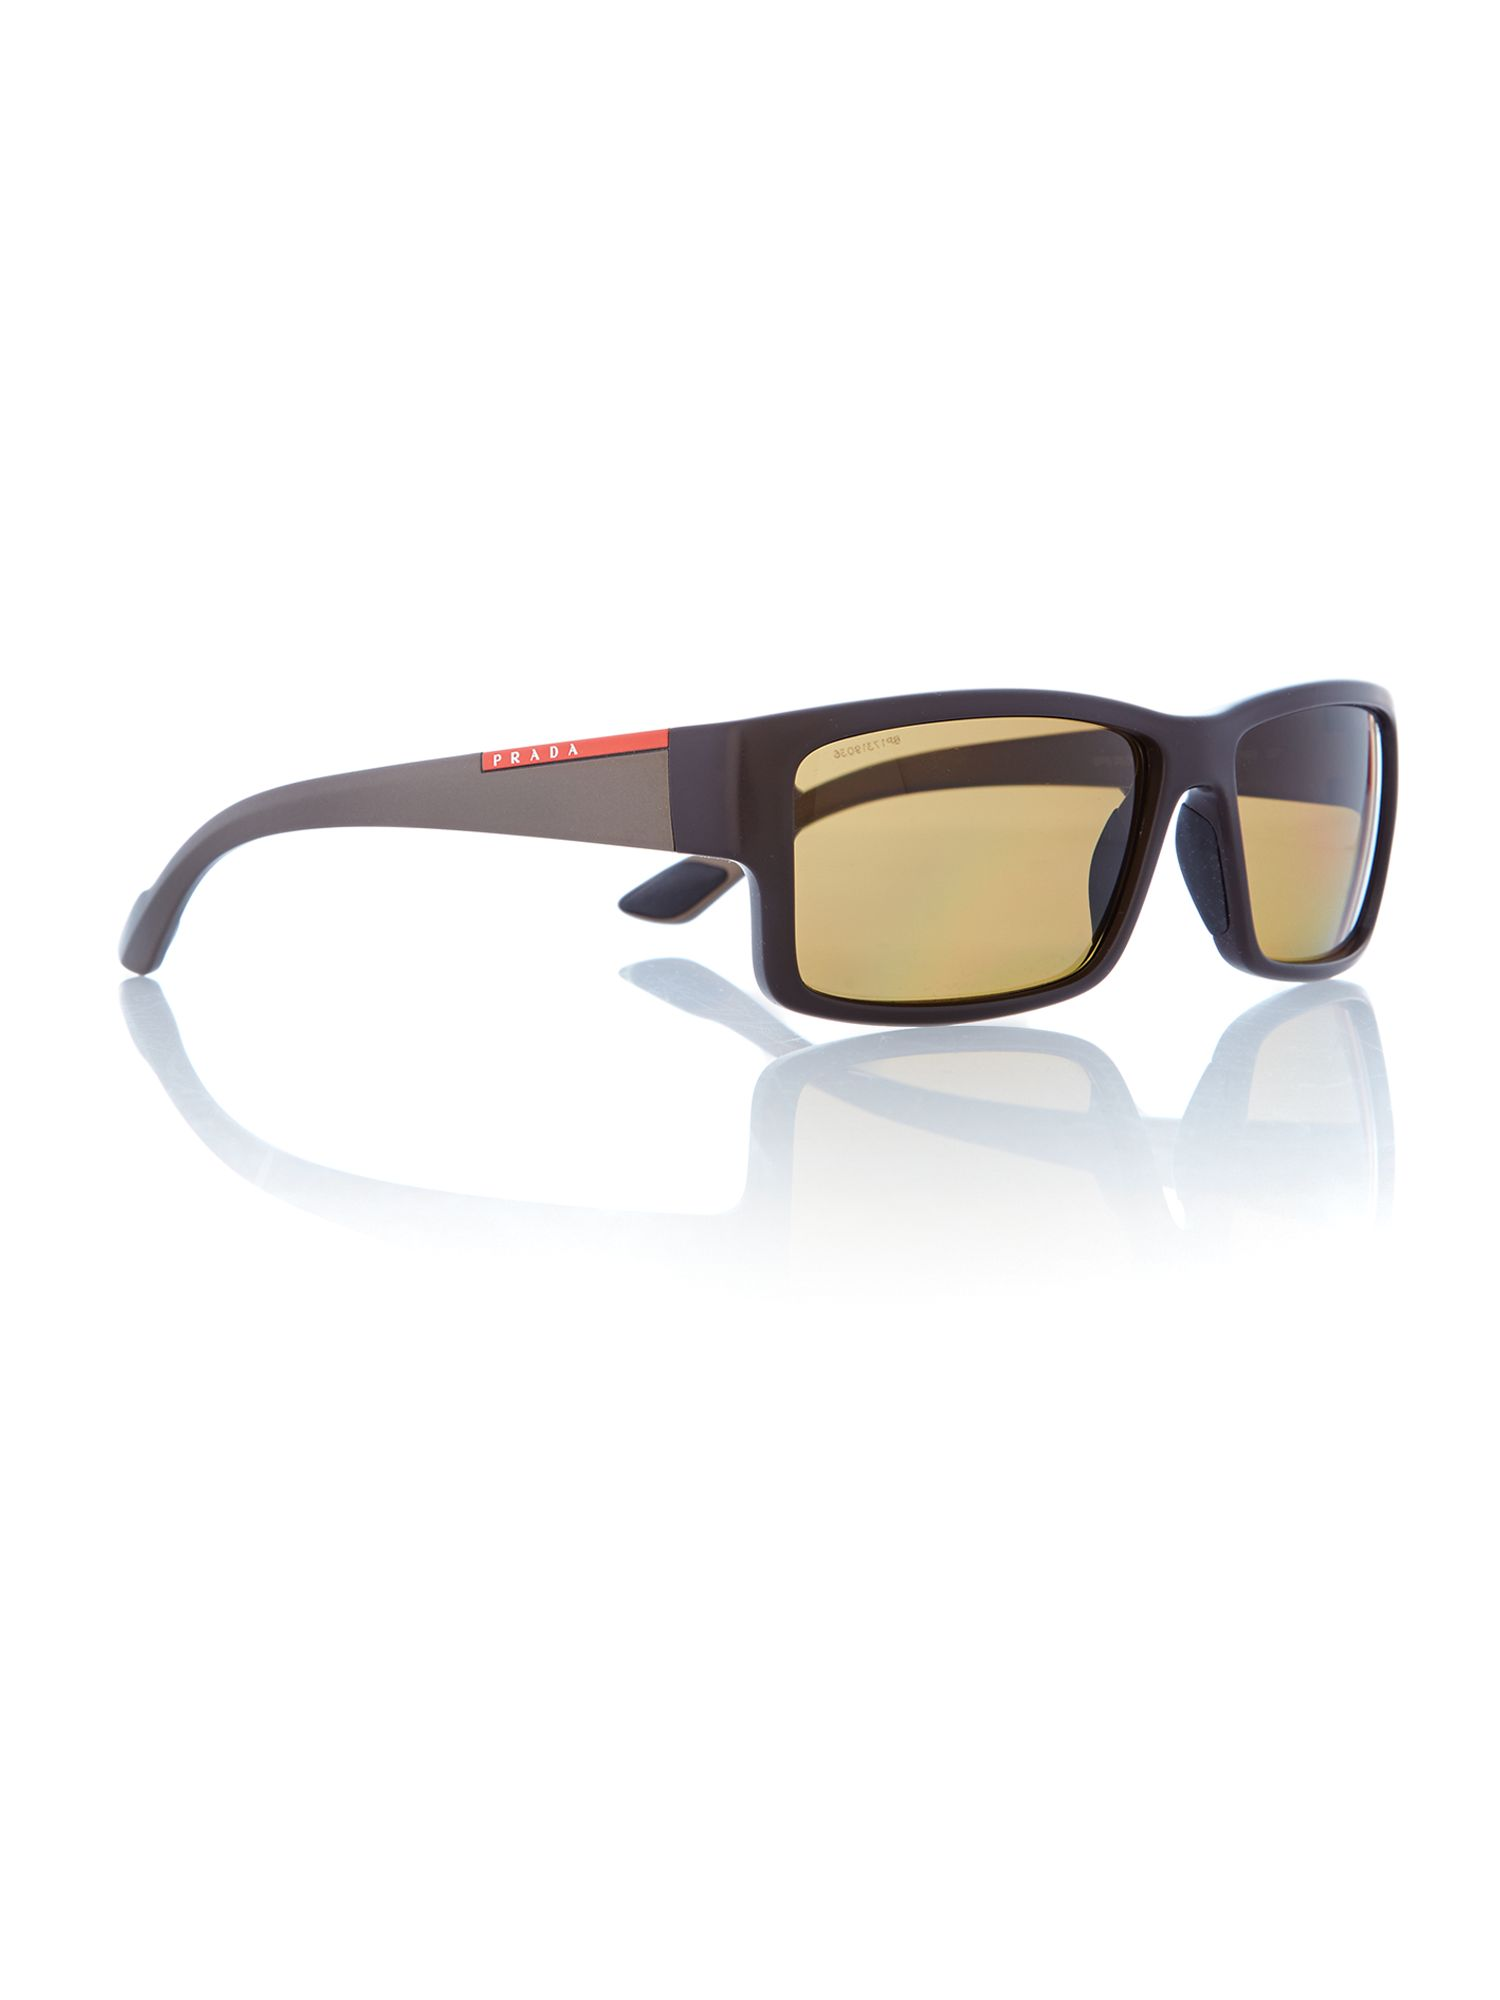 Mens Brown Rectangular Sunglasses